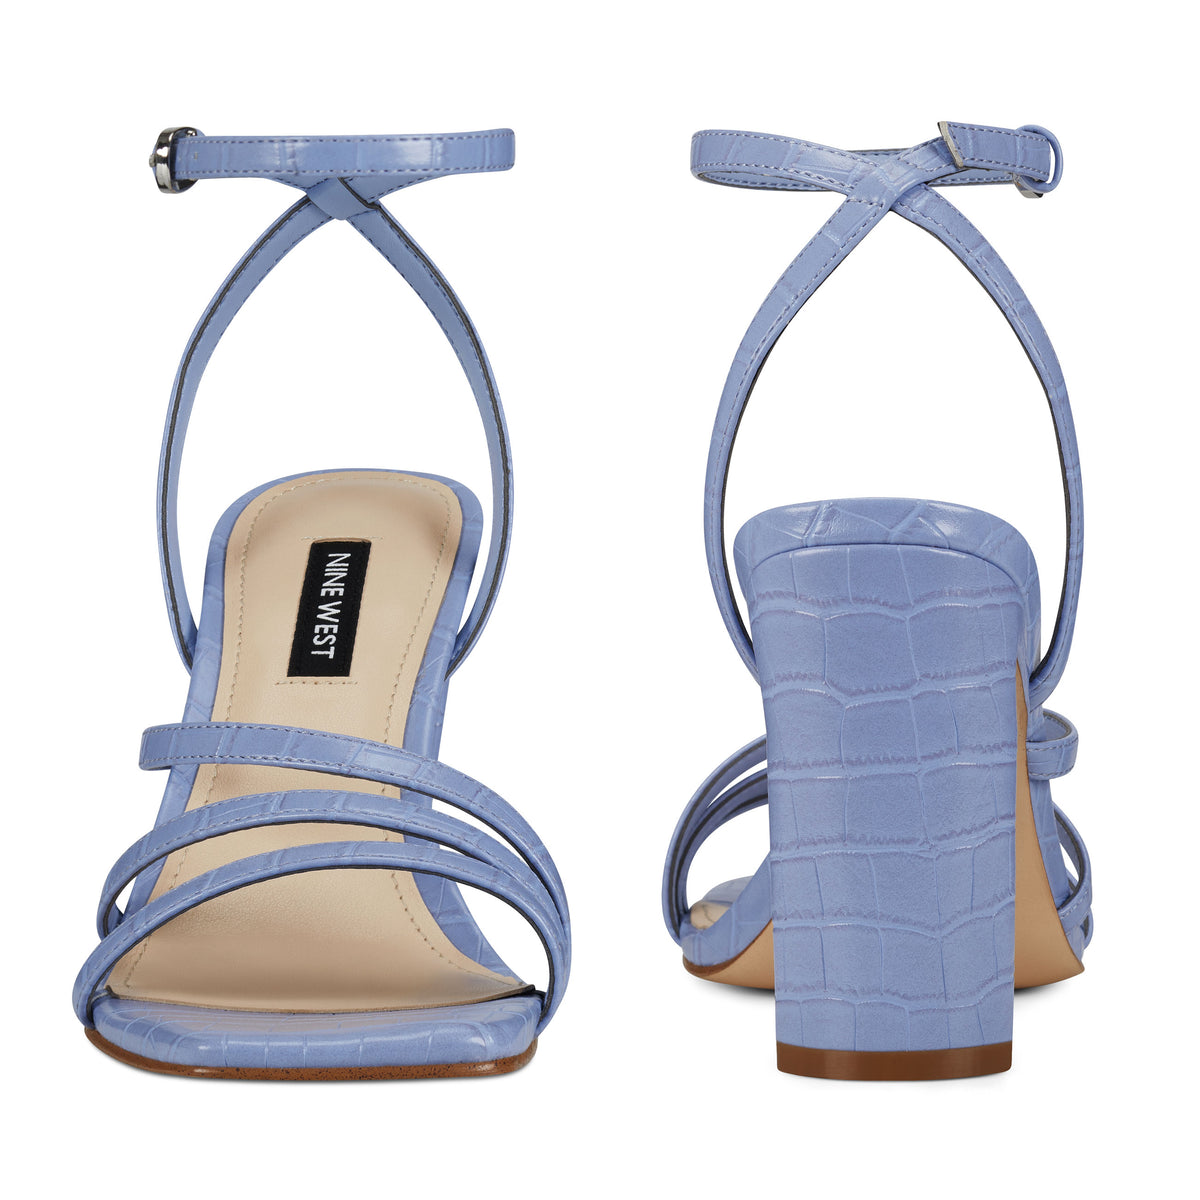 zelina-heeled-strappy-sandals-in-light-blue-embossed-croco